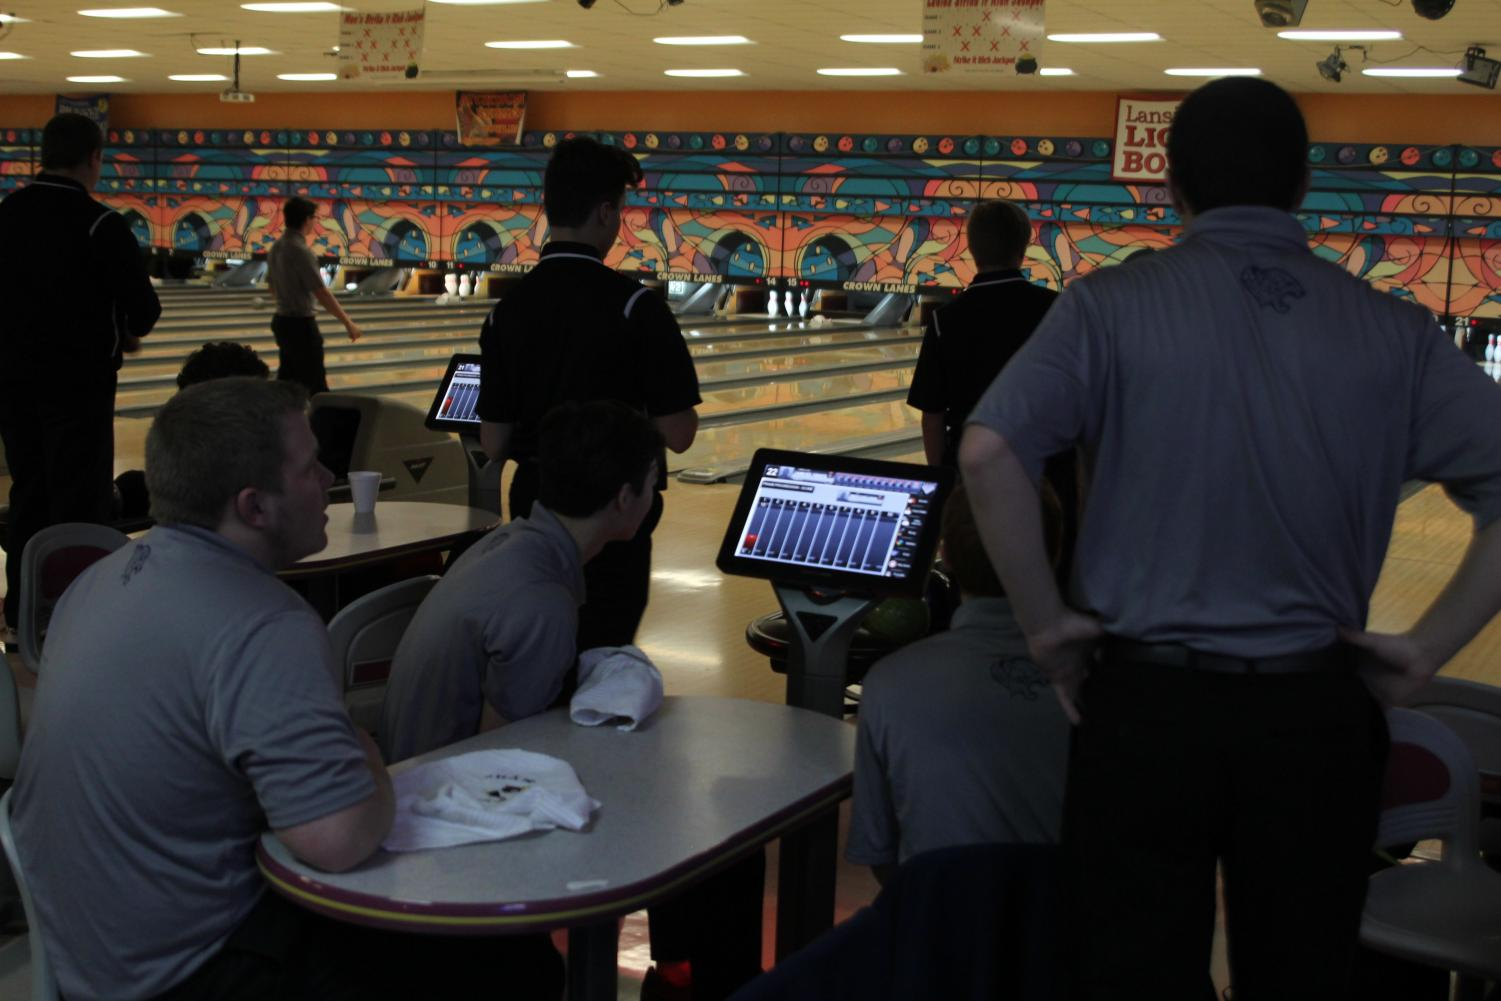 Preparing to begin the frame, seniors Trey Callahan, Brent Stevenson, Bradley Teasley and Clark Harris discuss their strategy for the meet. The bowling meet was held in Leavenworth at Crown Lanes versus Lansing on Tuesday, Jan. 16.